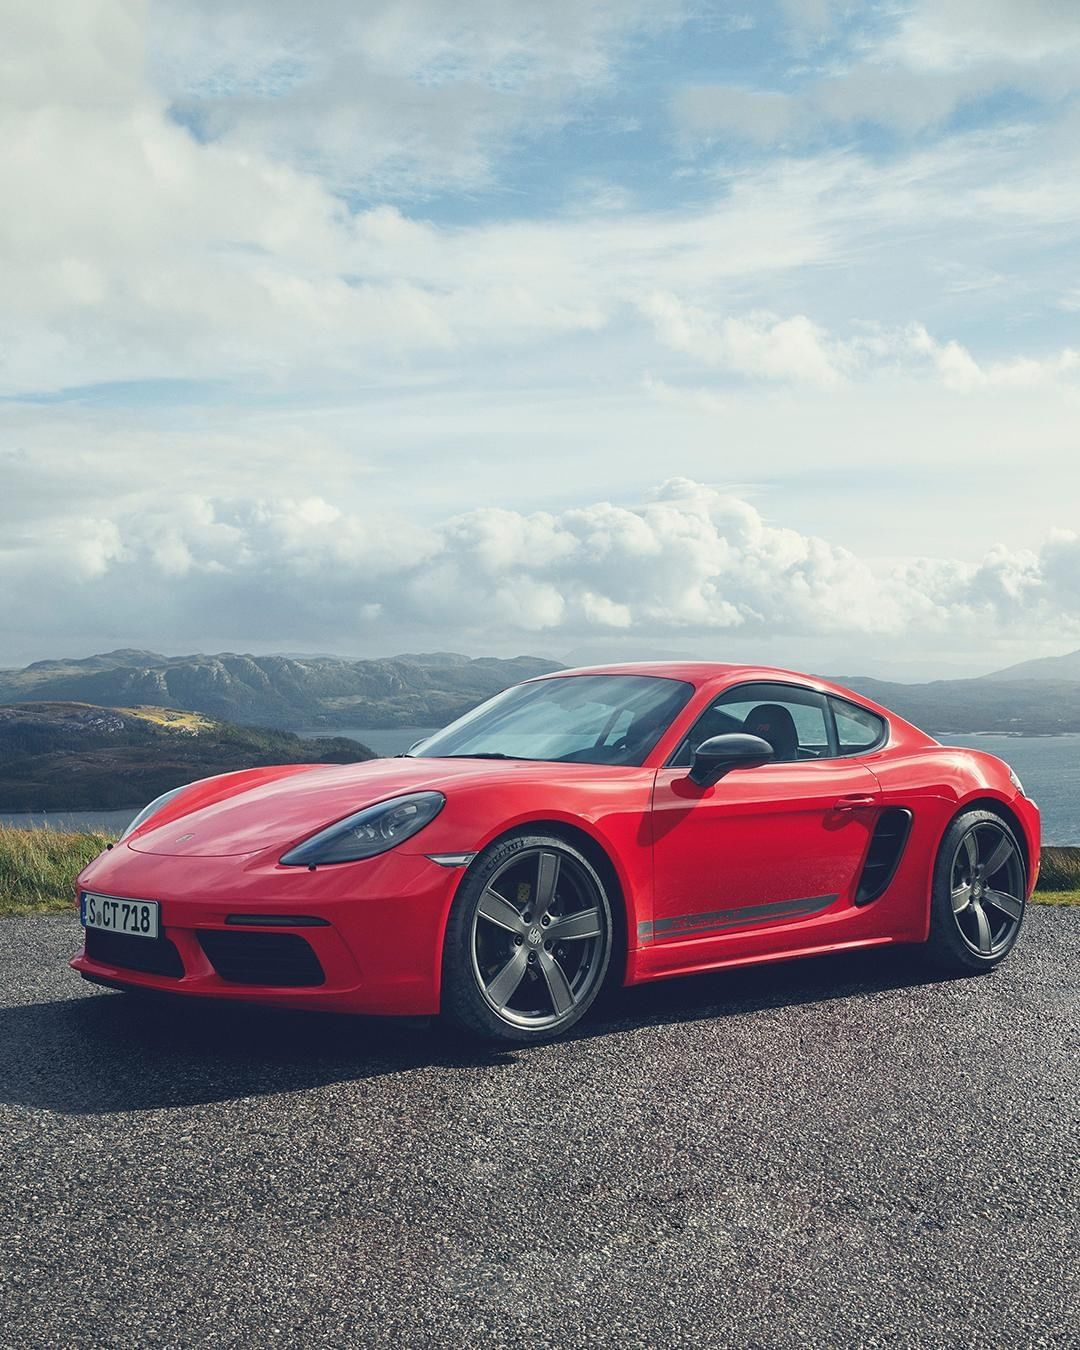 The New Porsche 718 Cayman T Is Made For Pure Driving Pleasure Its Heart A 2 0 Litre Turbocharged Horizontall Porsche 718 Cayman Sports Car Brands Sports Car